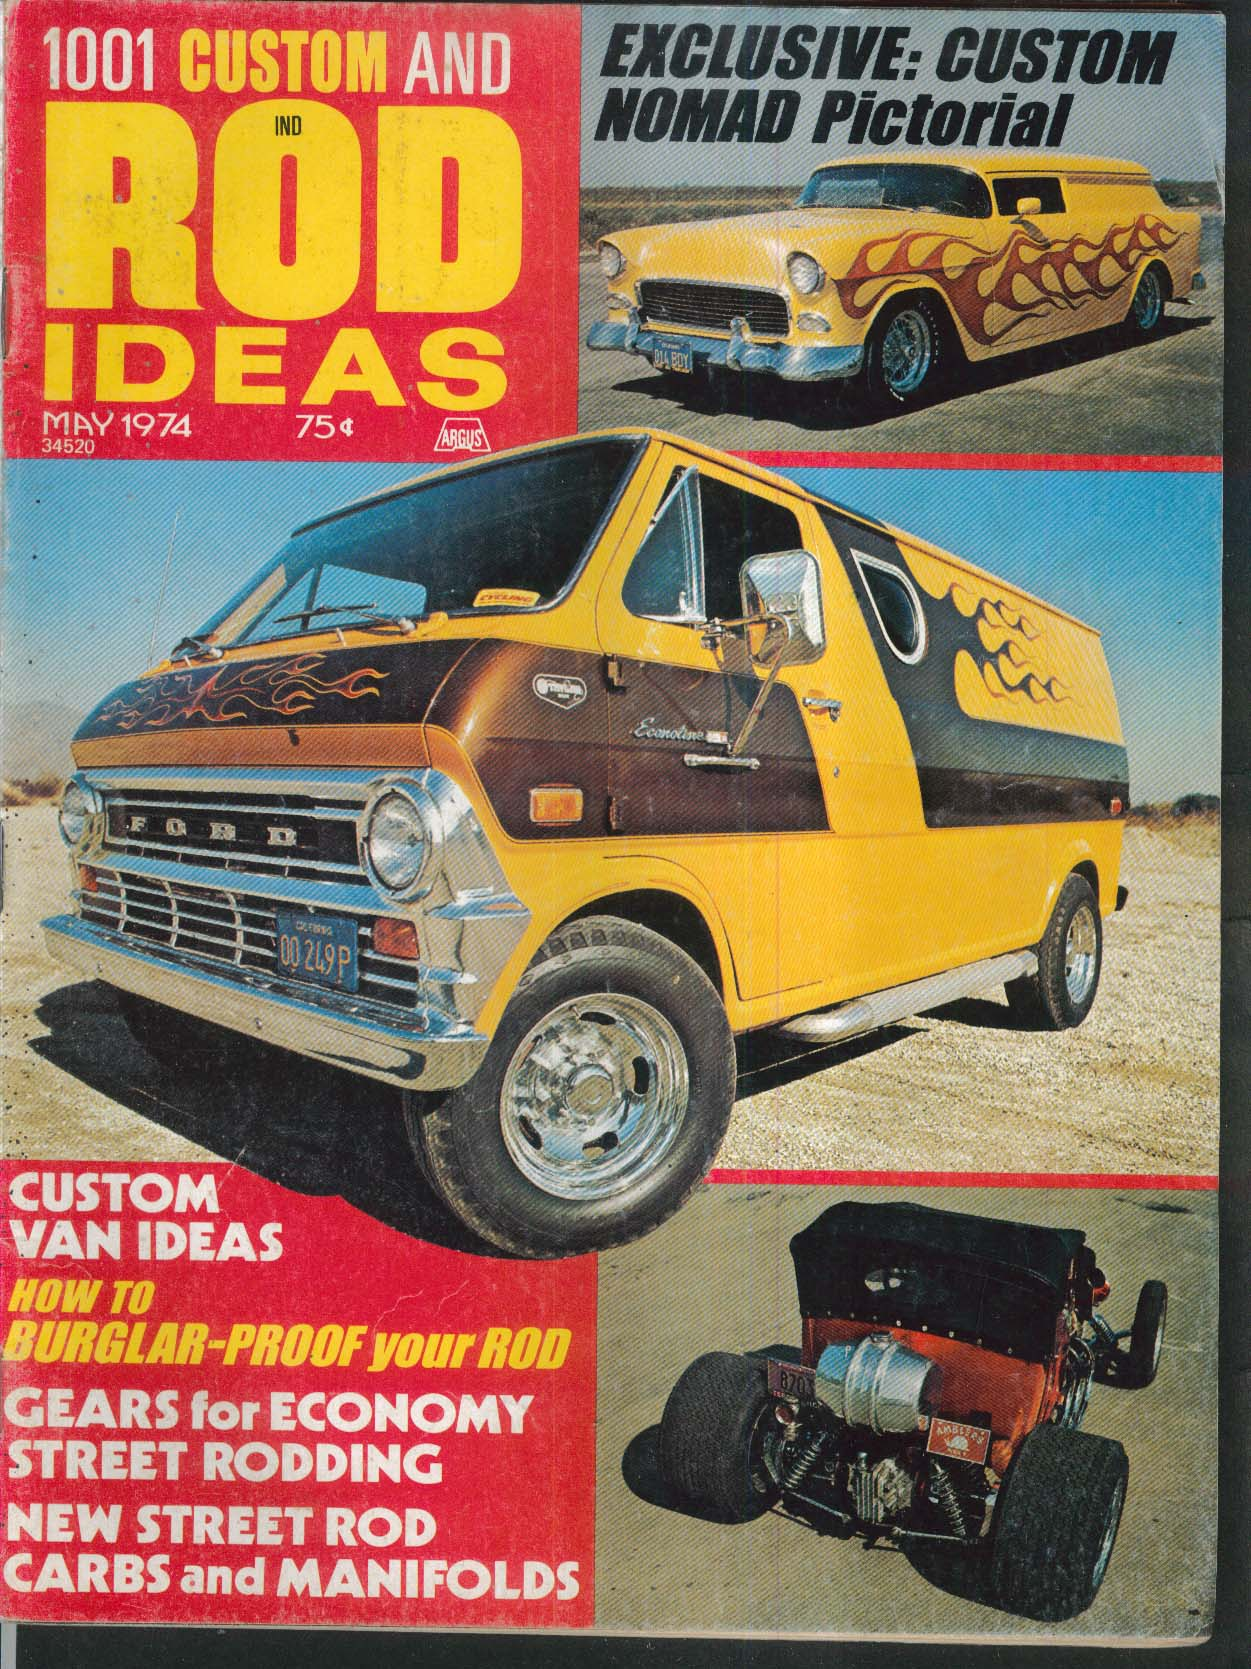 1001 CUSTOM & ROD IDEAS Nomad Pictorial, Vans, Energy Crisis, Denver Show 5 1974